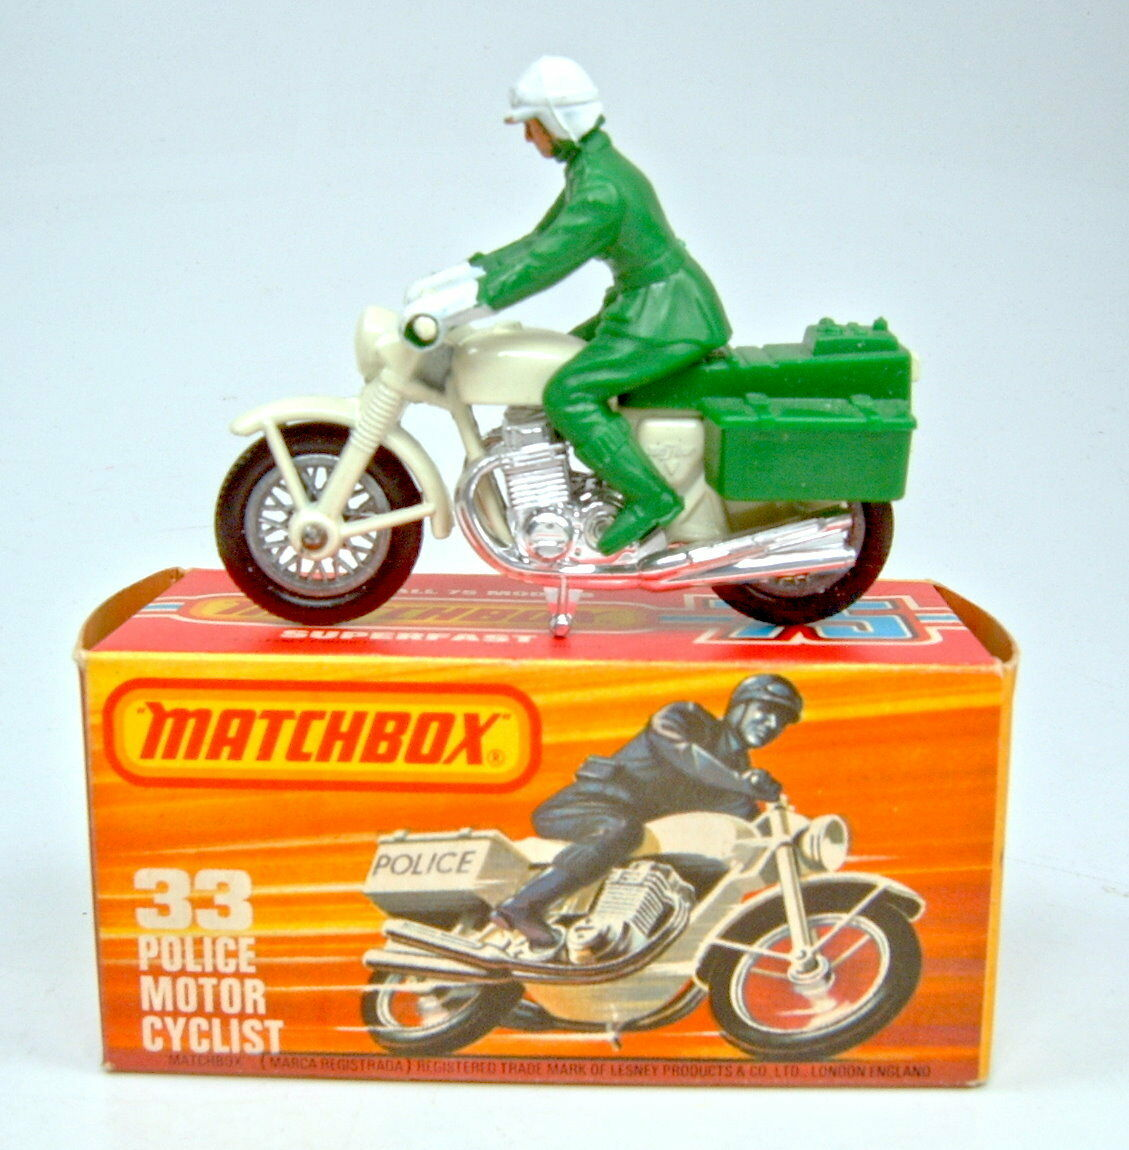 Matchbox No.33 Police Motorcycle green CREAM  Polizei   rare version mint boxed